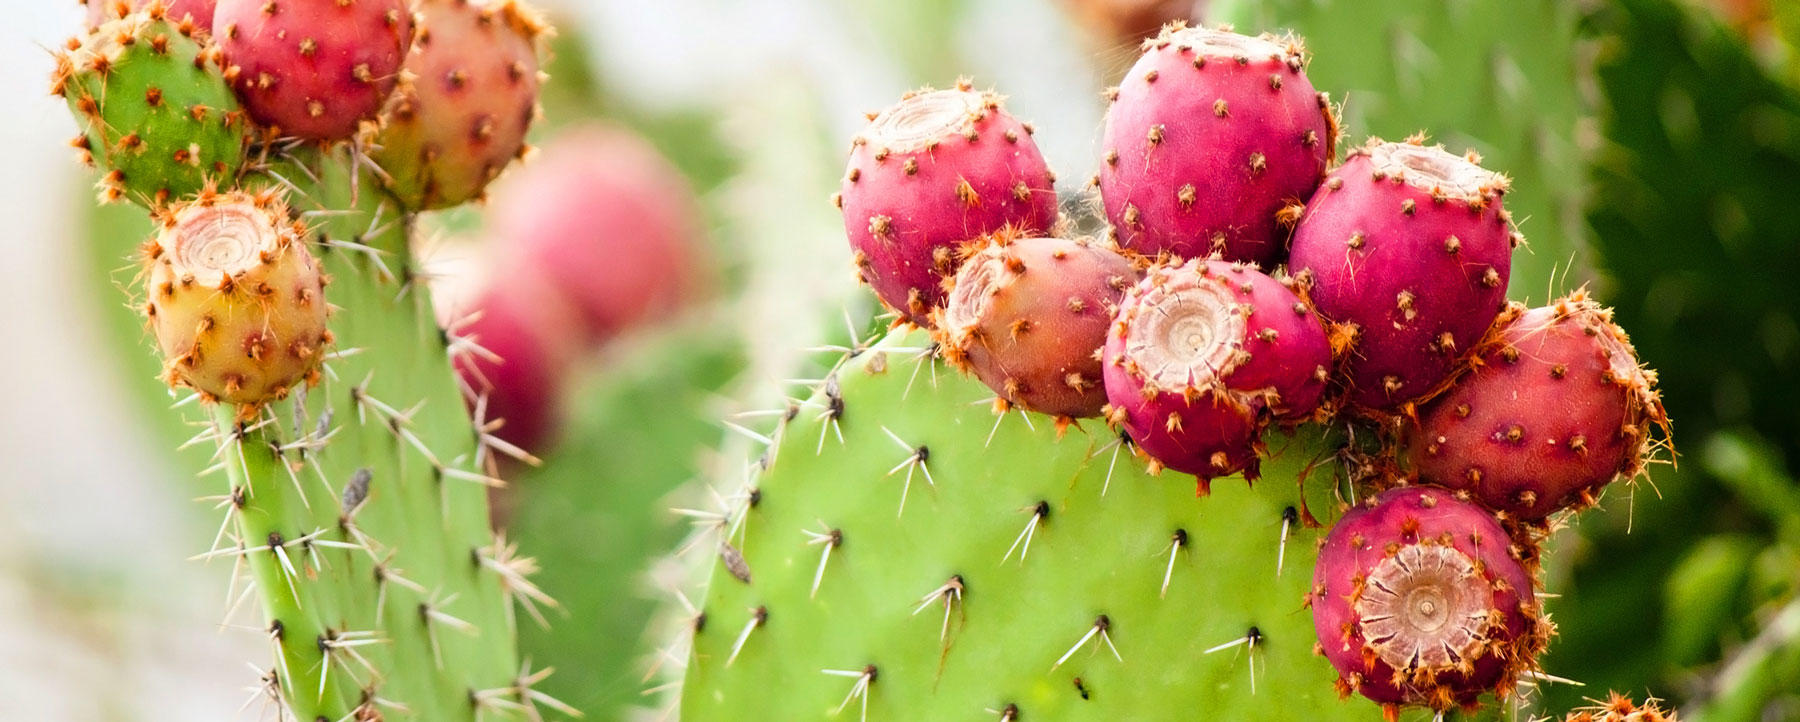 Prickly pear cactus banner